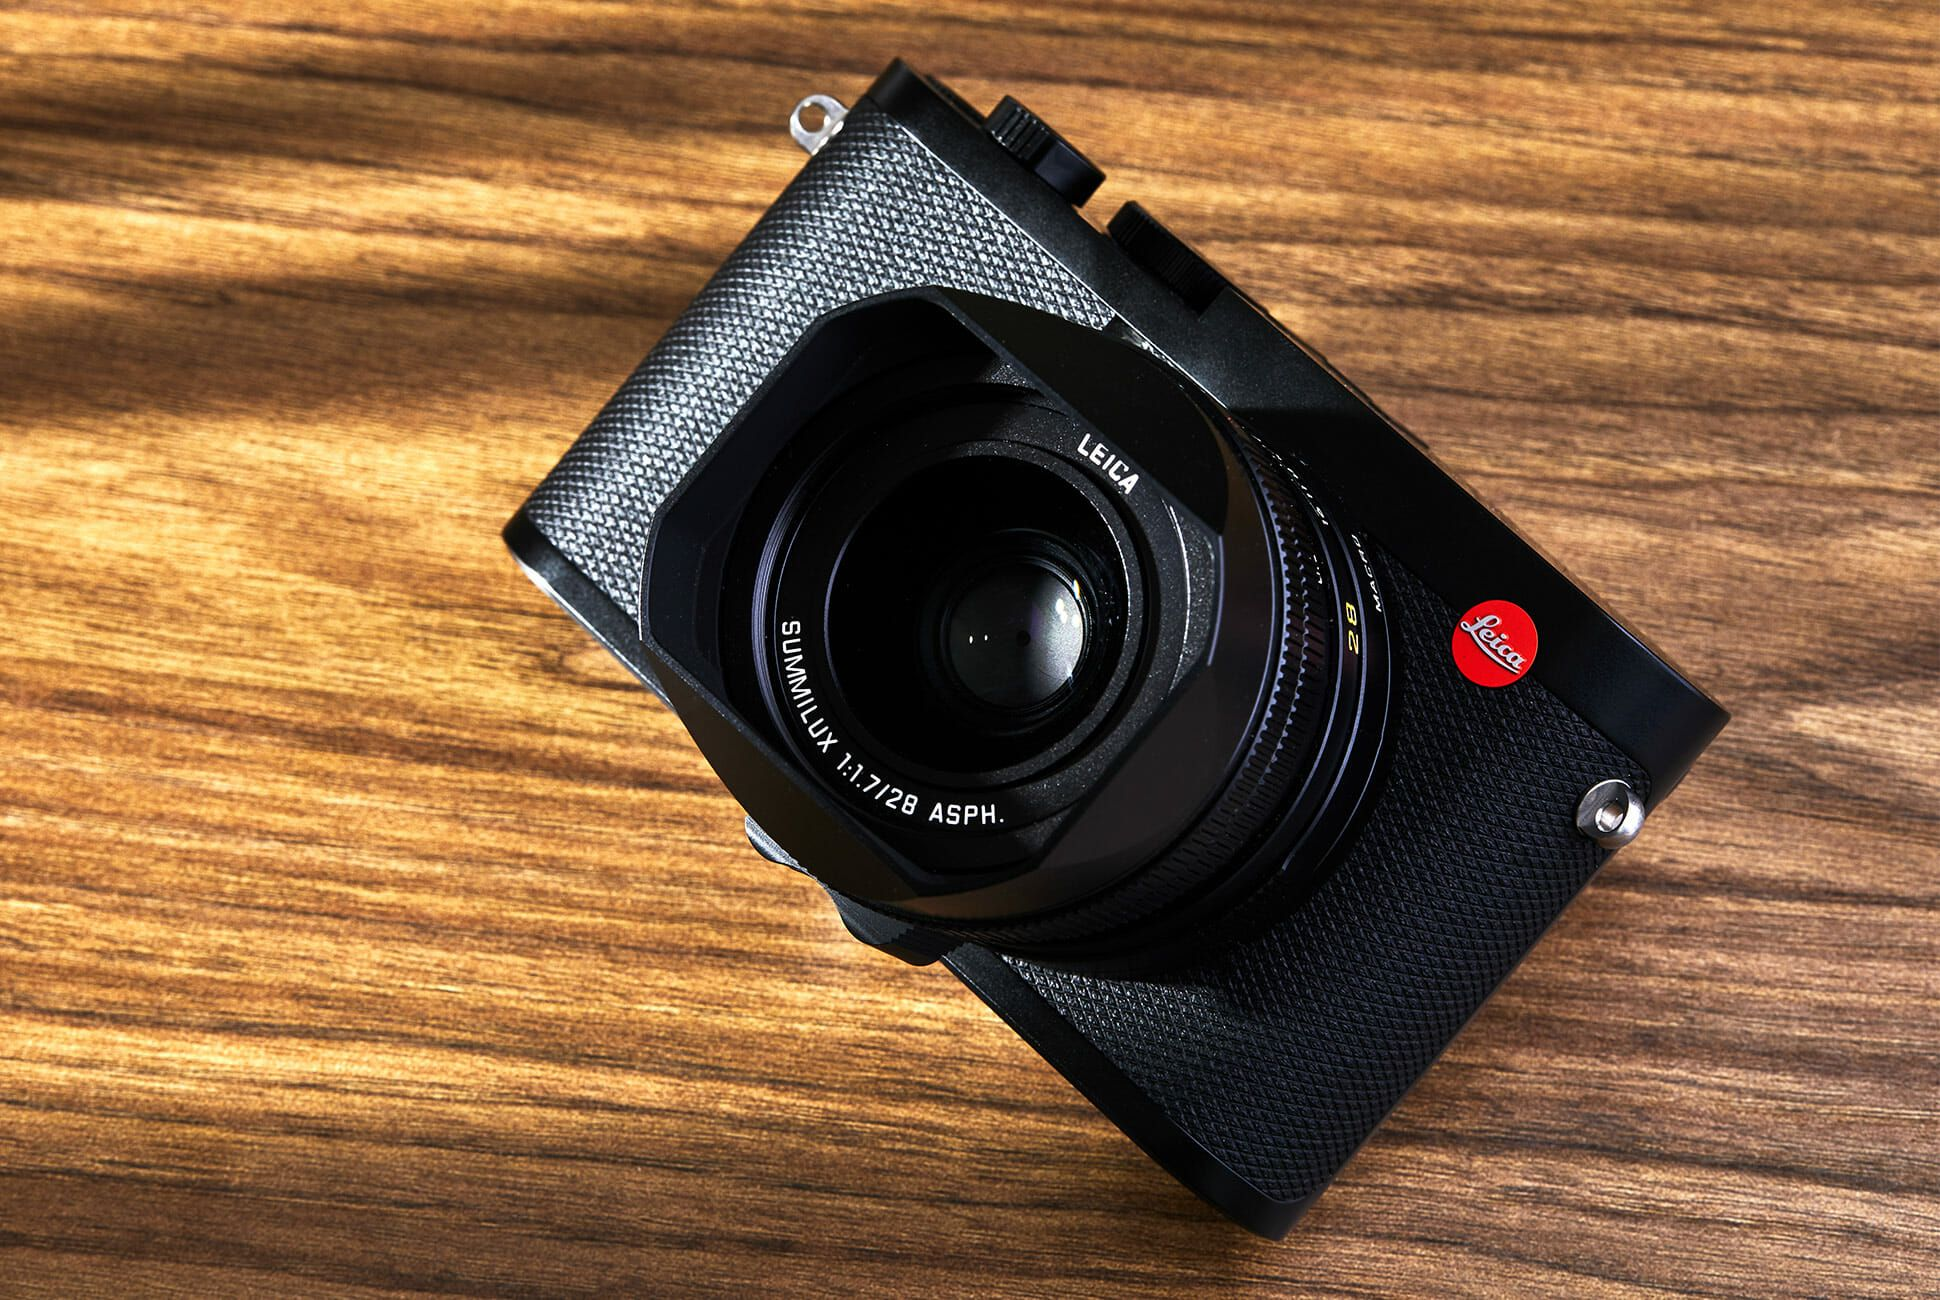 Best Compact Camera 2020.The Best Compact Travel Cameras Of 2019 Gear Patrol